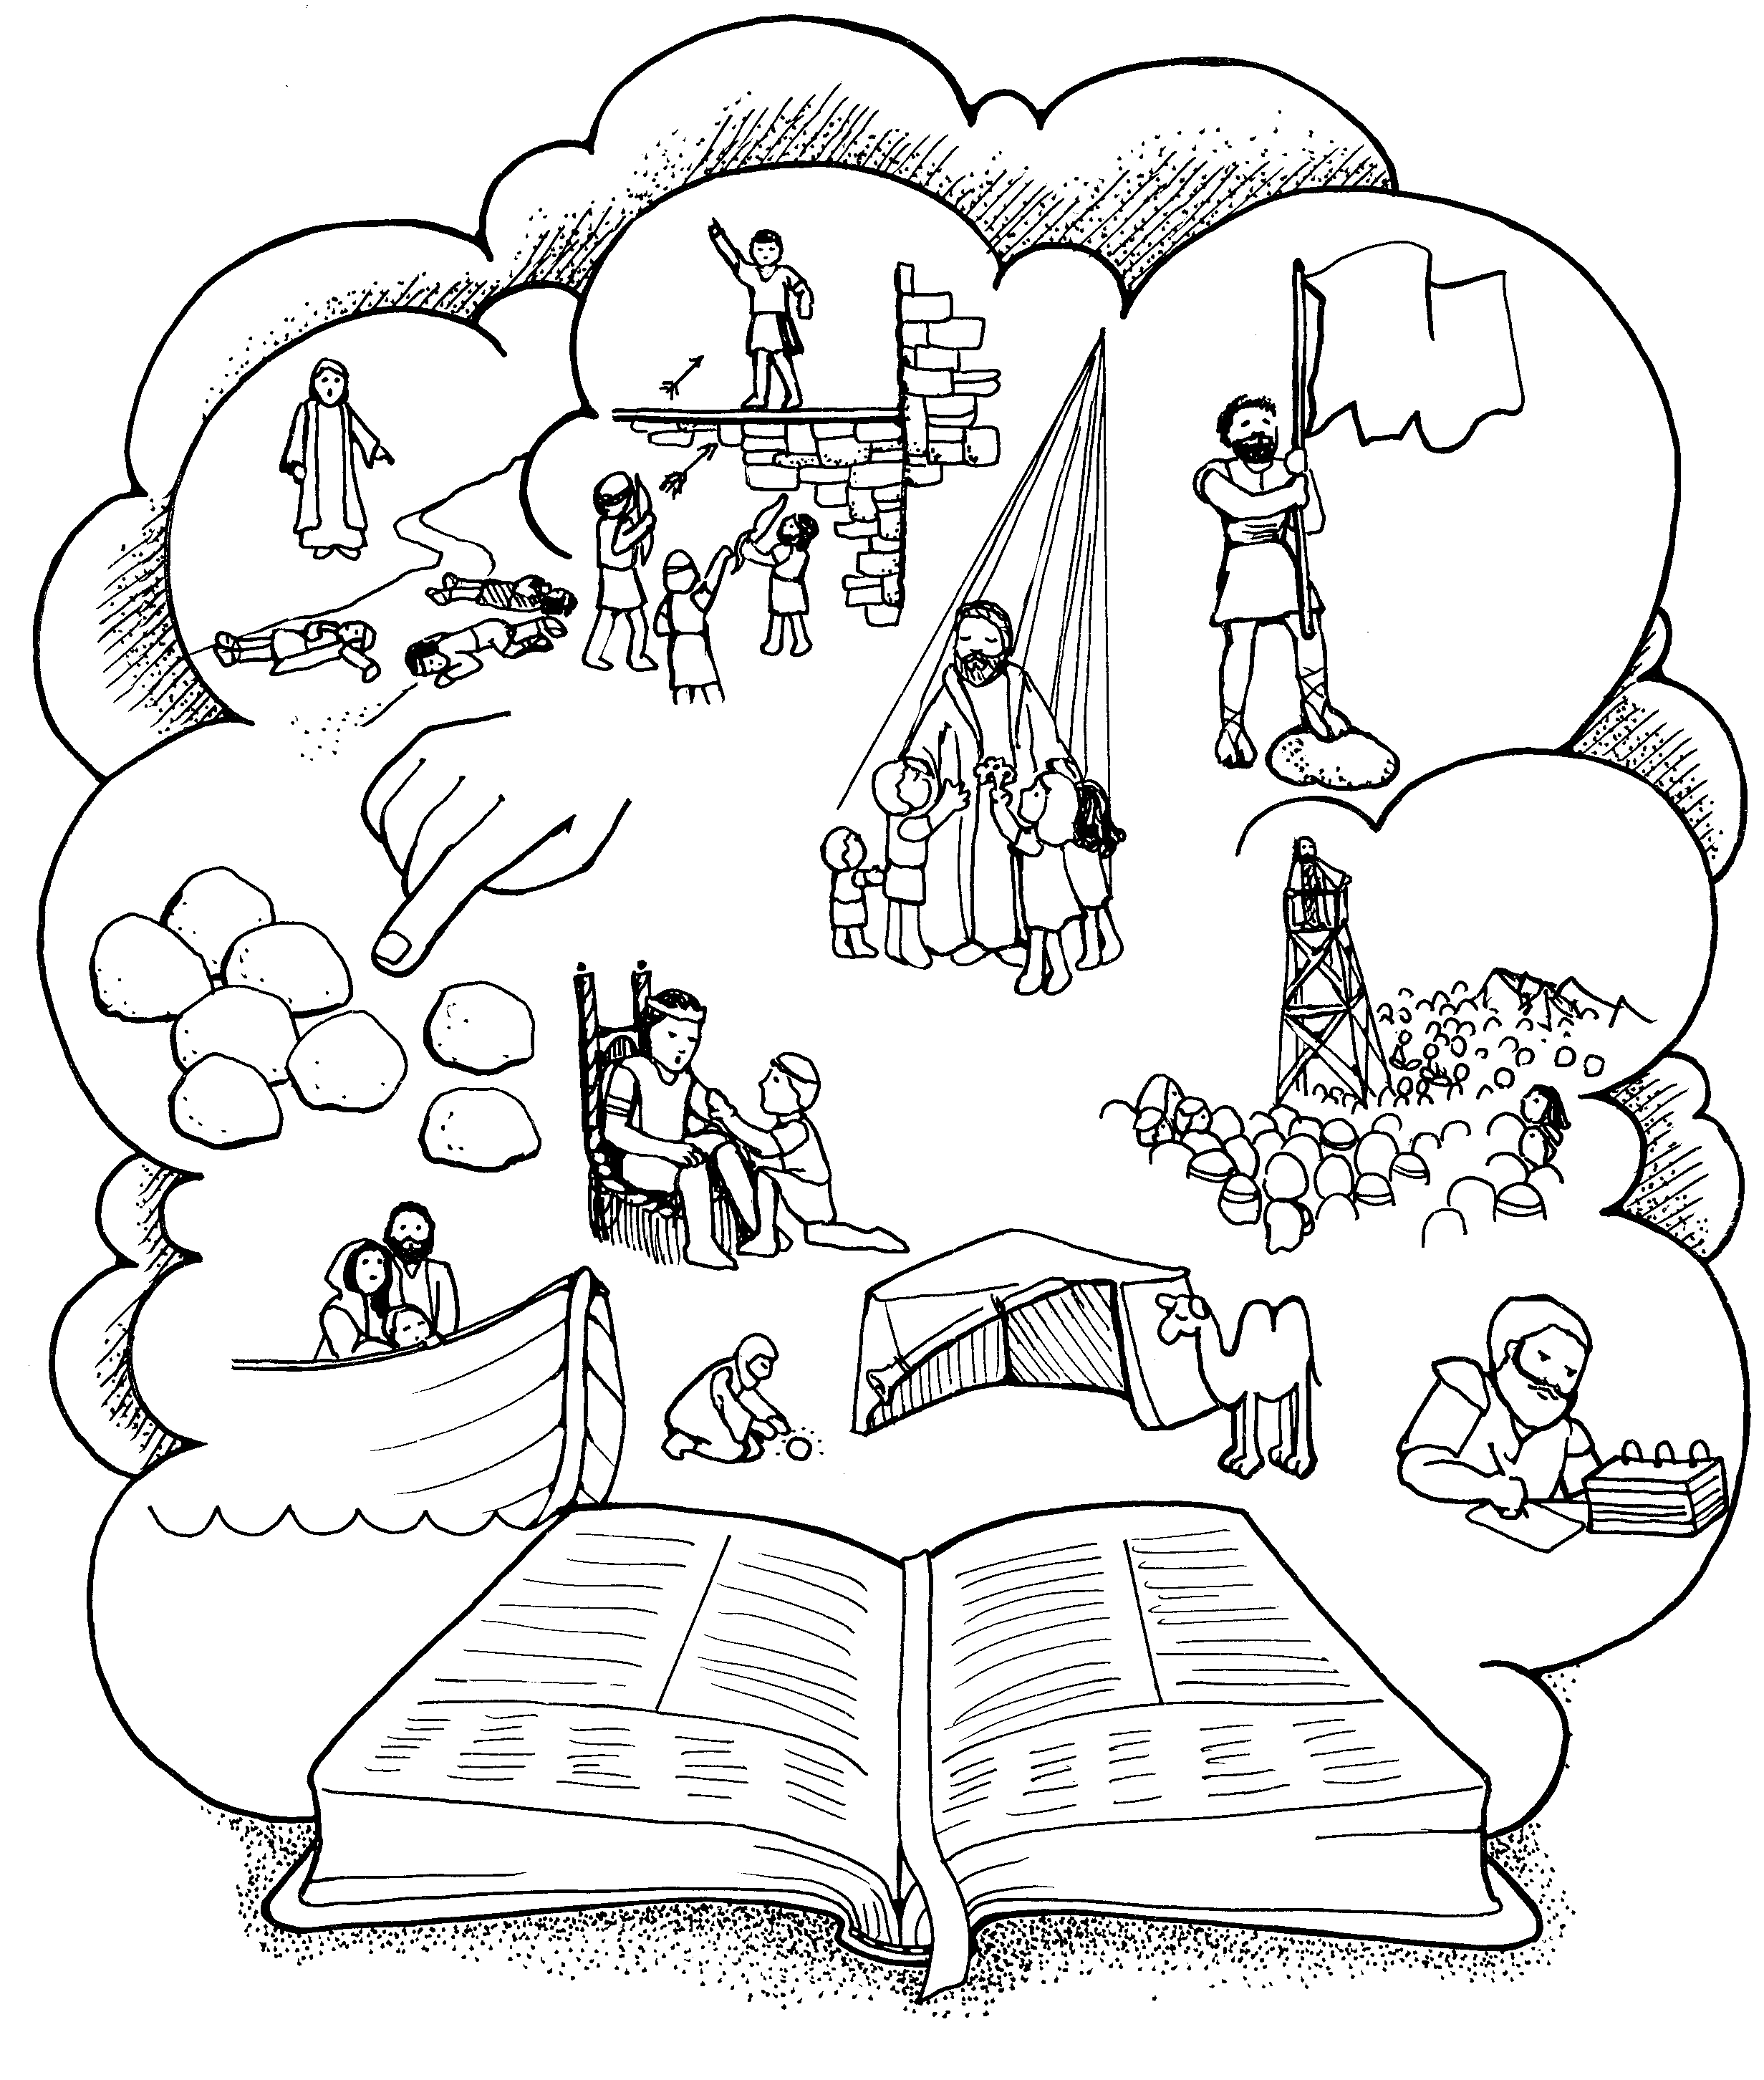 111 Book Of Mormon free clipart.